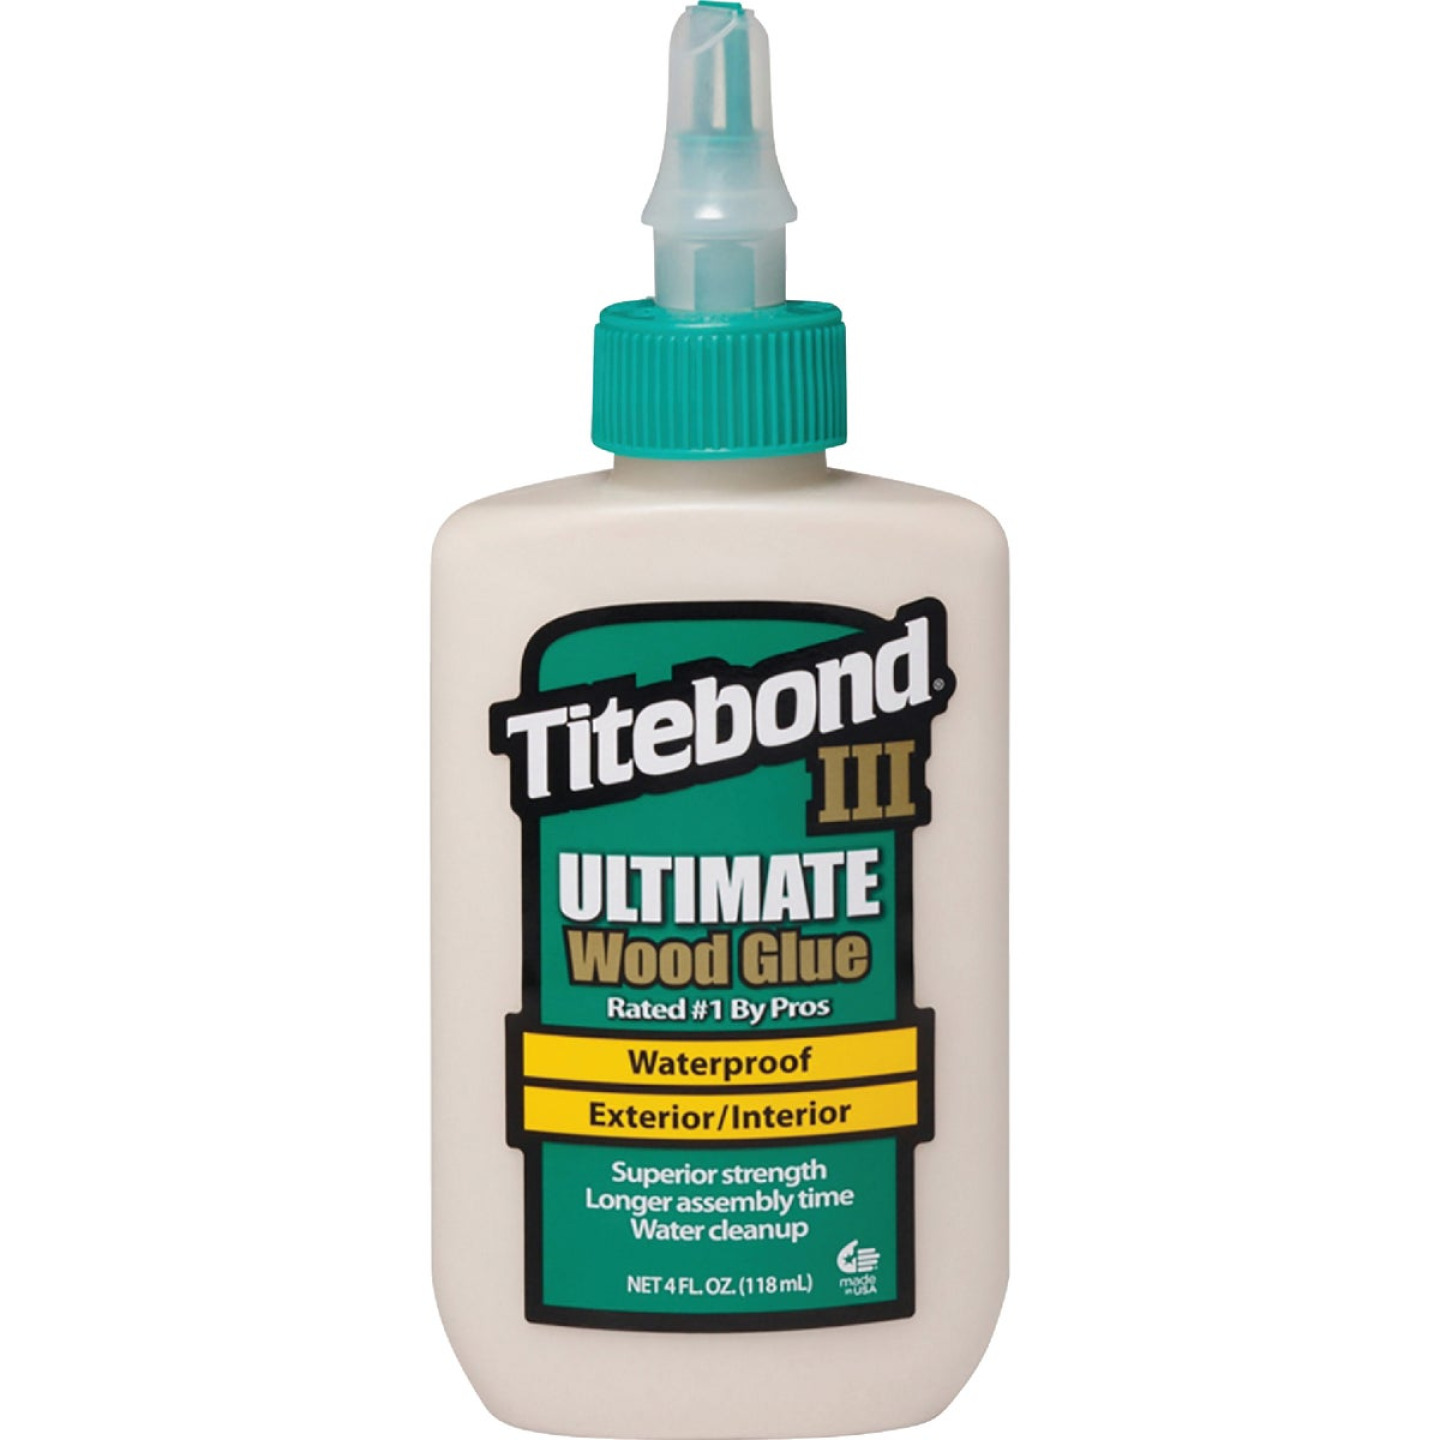 Titebond III 4 Oz. Ultimate Waterproof Wood Glue Image 1